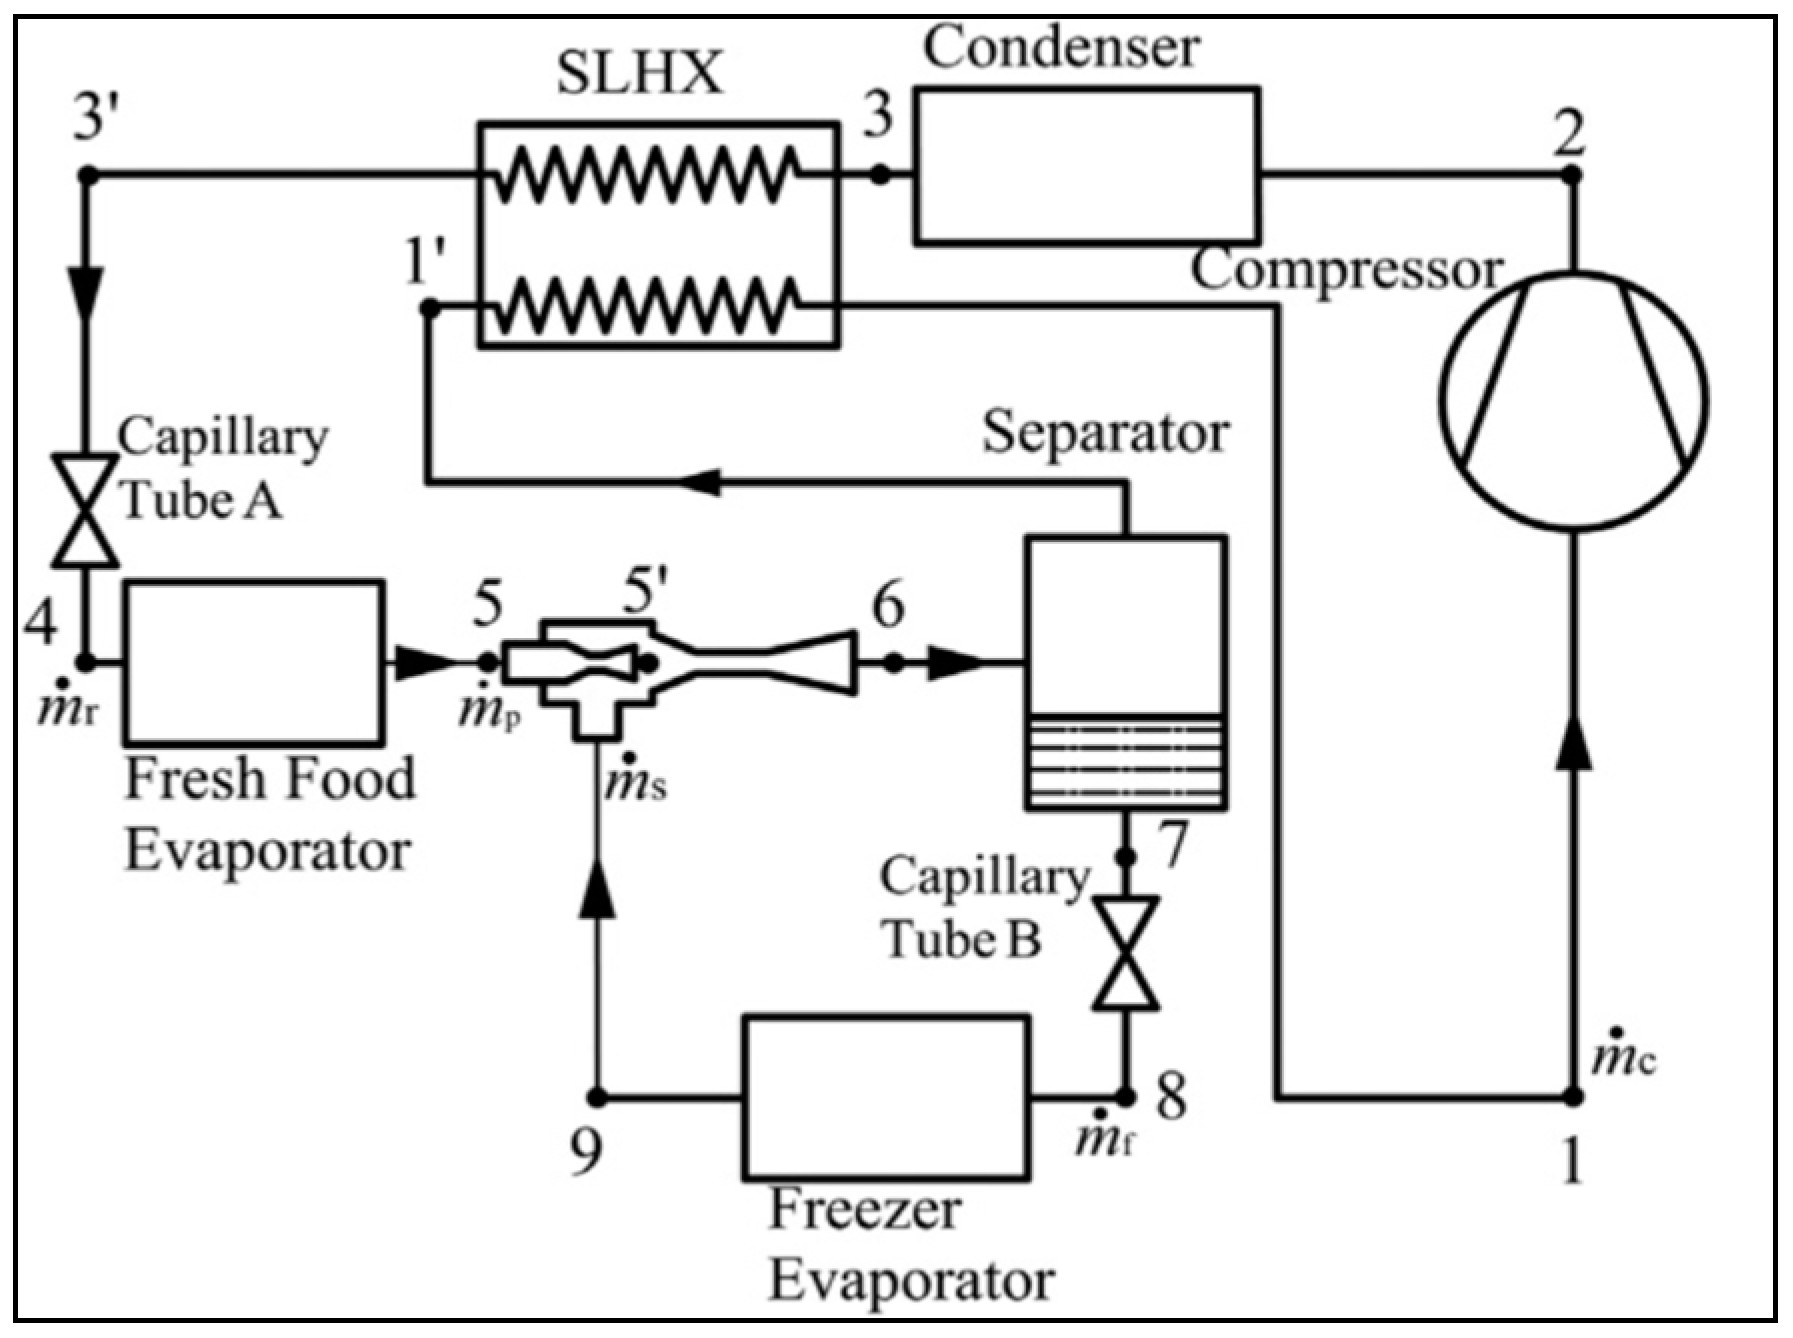 Points And Condenser Diagram My Wiring DIagram